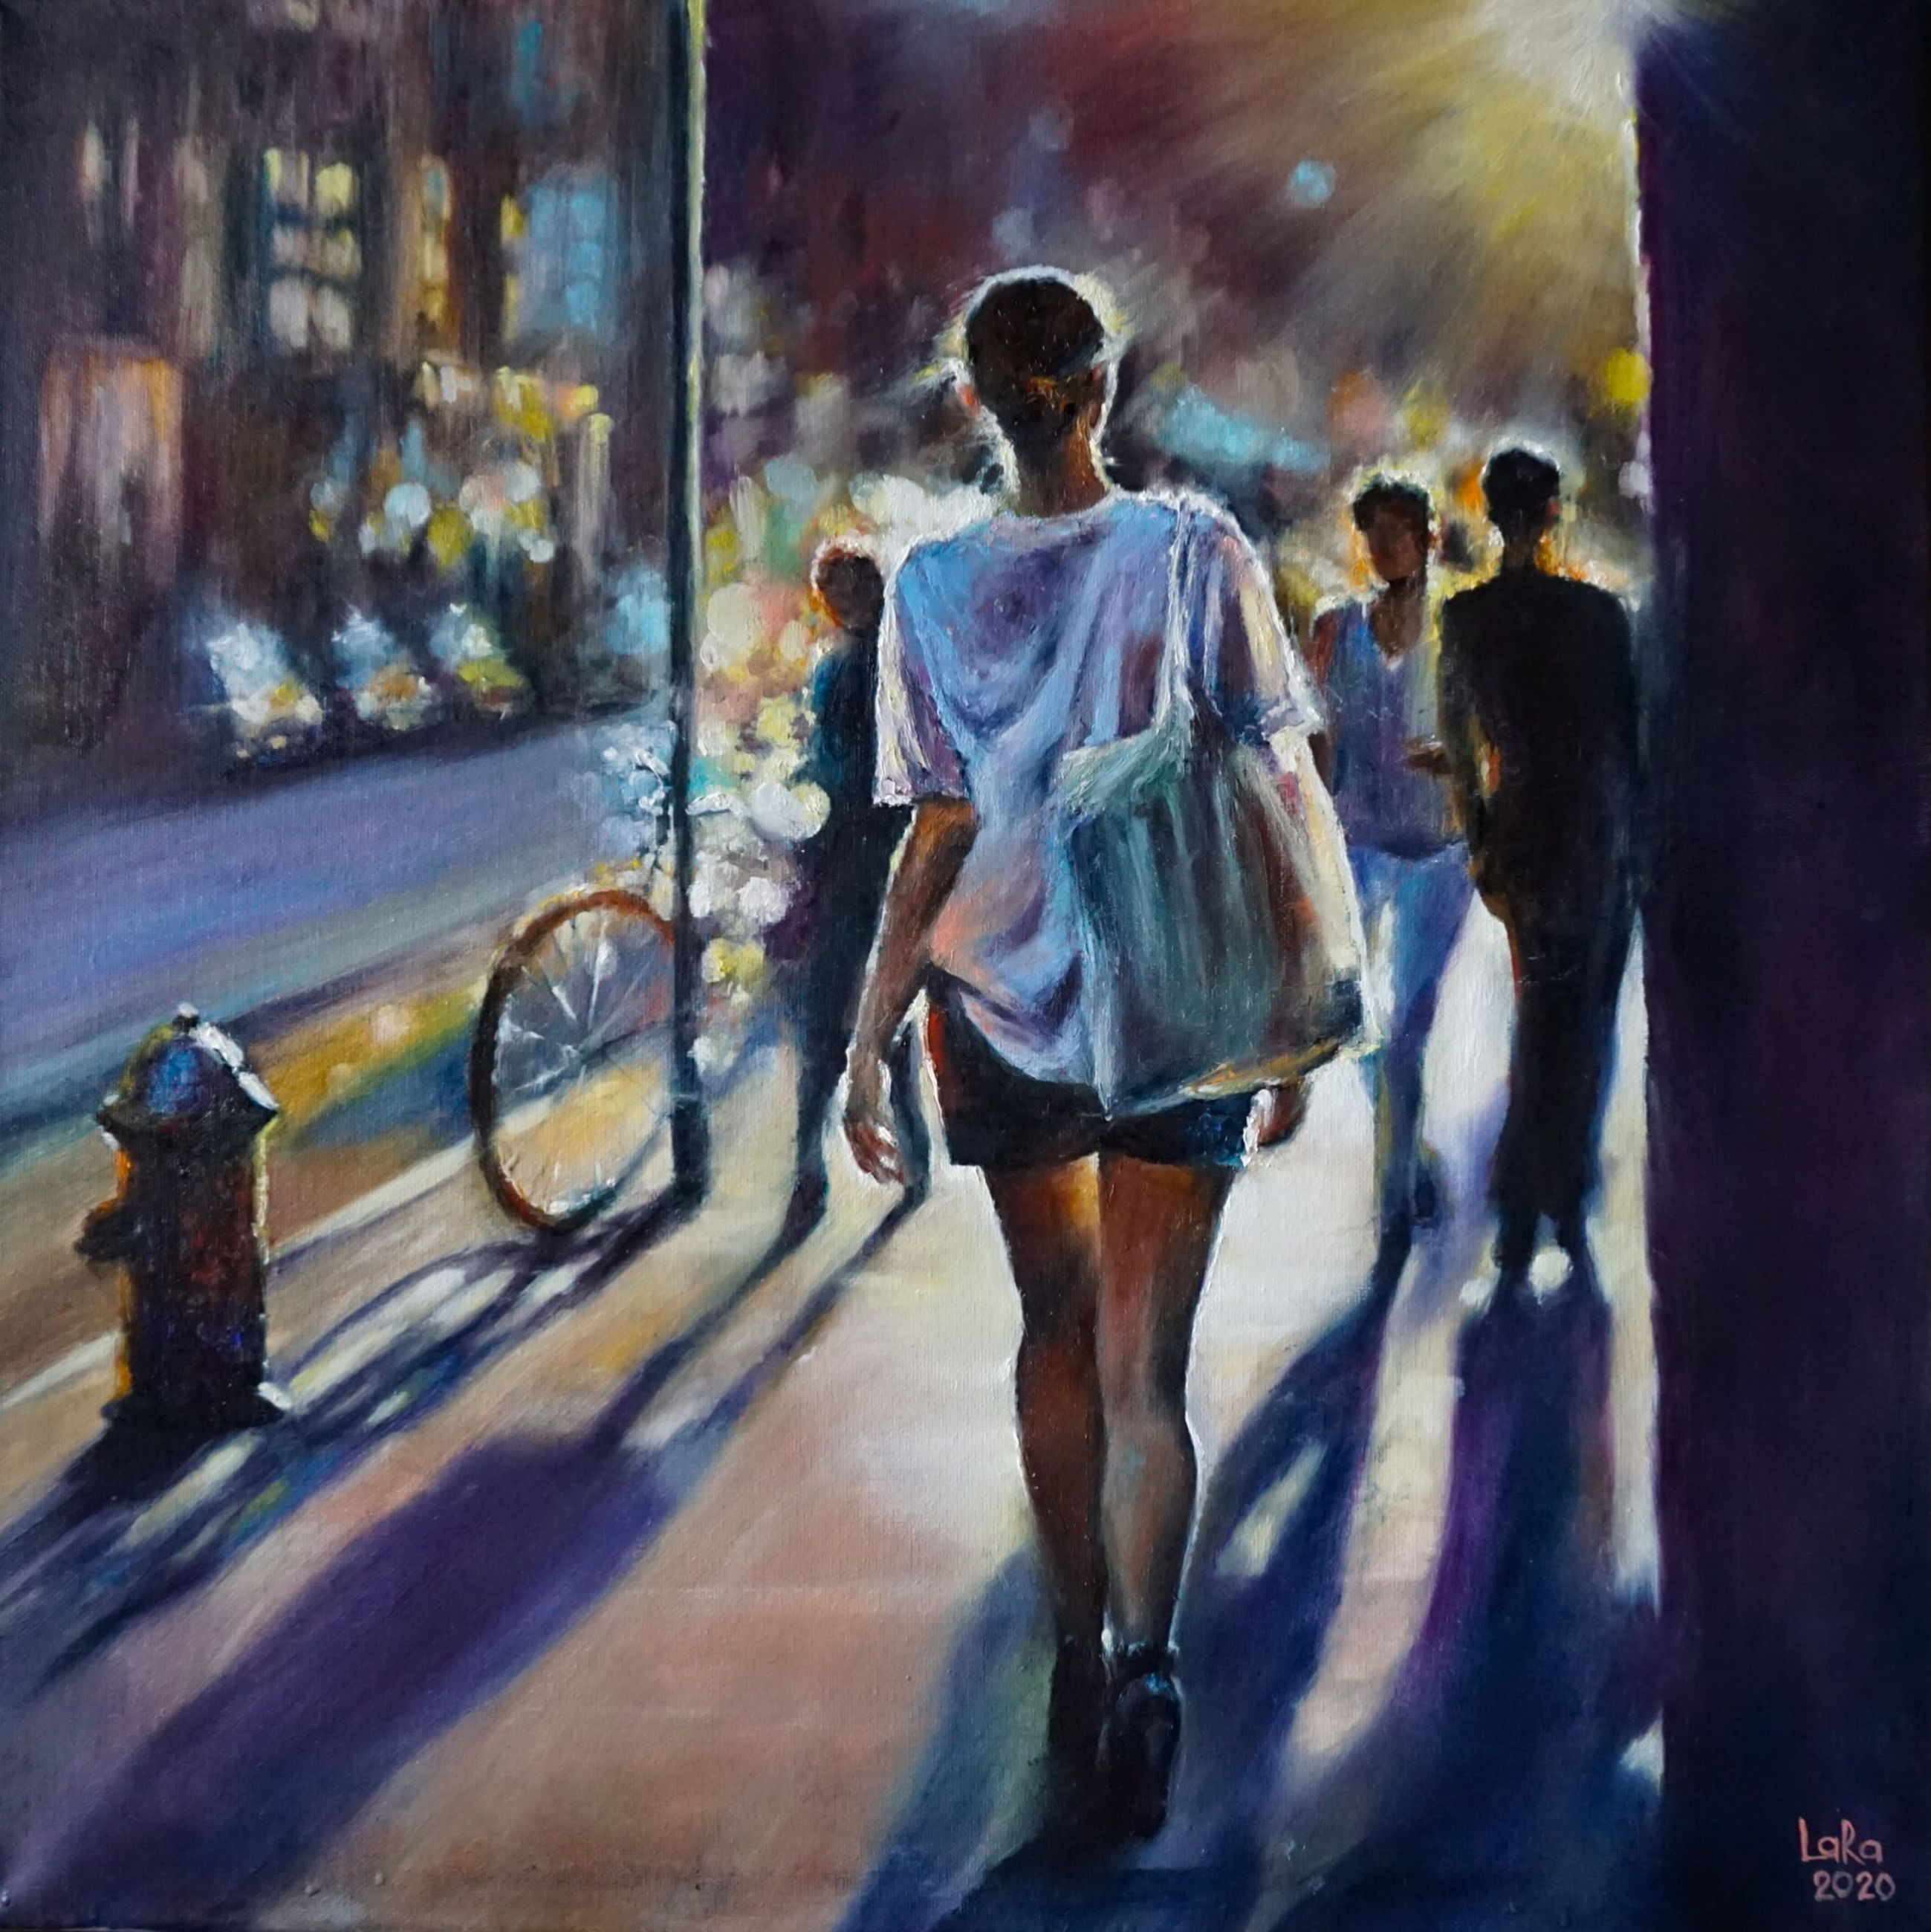 city, full length, walking, rear view, architecture, motion, casual clothing, group of people, incidental people, people, adult, day, street, outdoors, real people, glass - material, illuminated, blurred motion, shorts